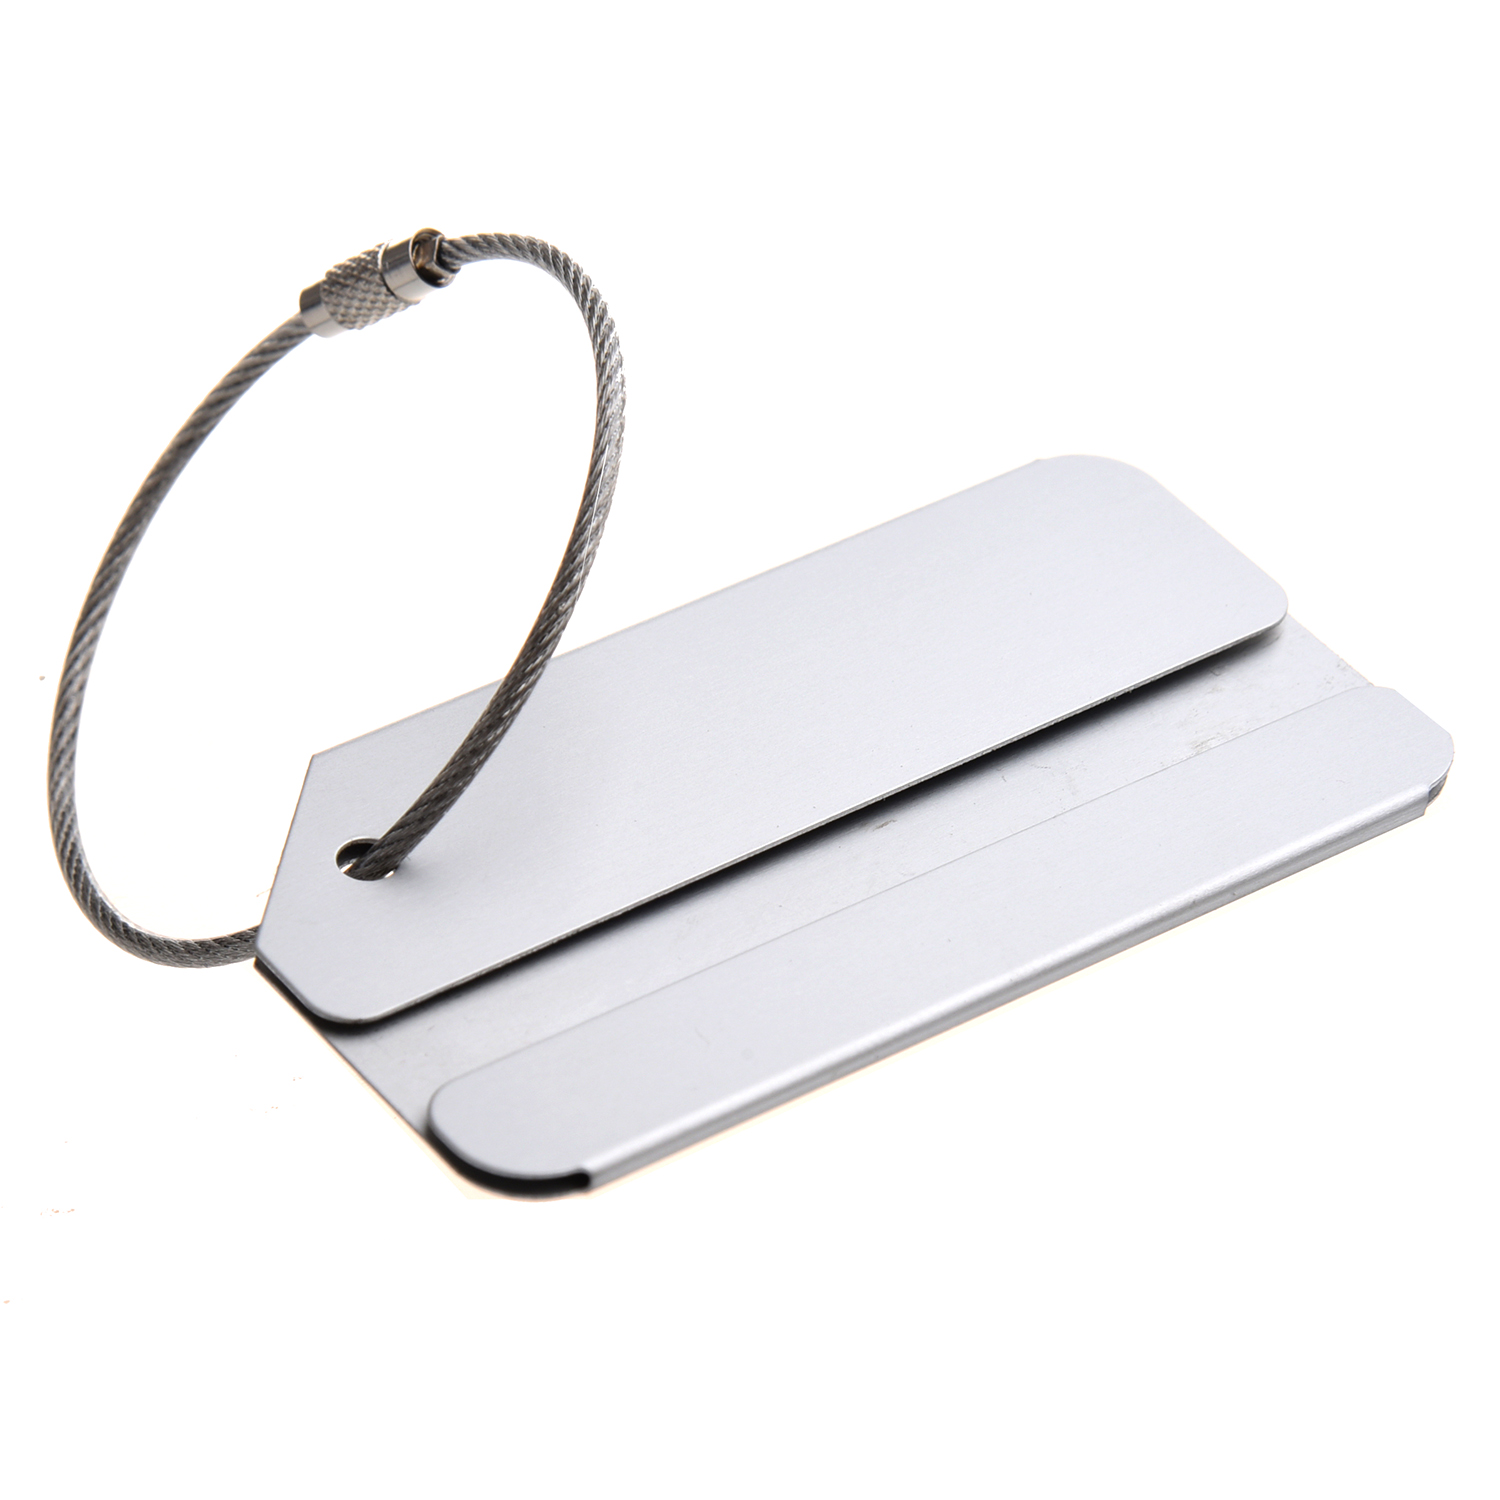 Aluminum alloy address label luggage trailer luggage tag name tag with metal cable (silver)